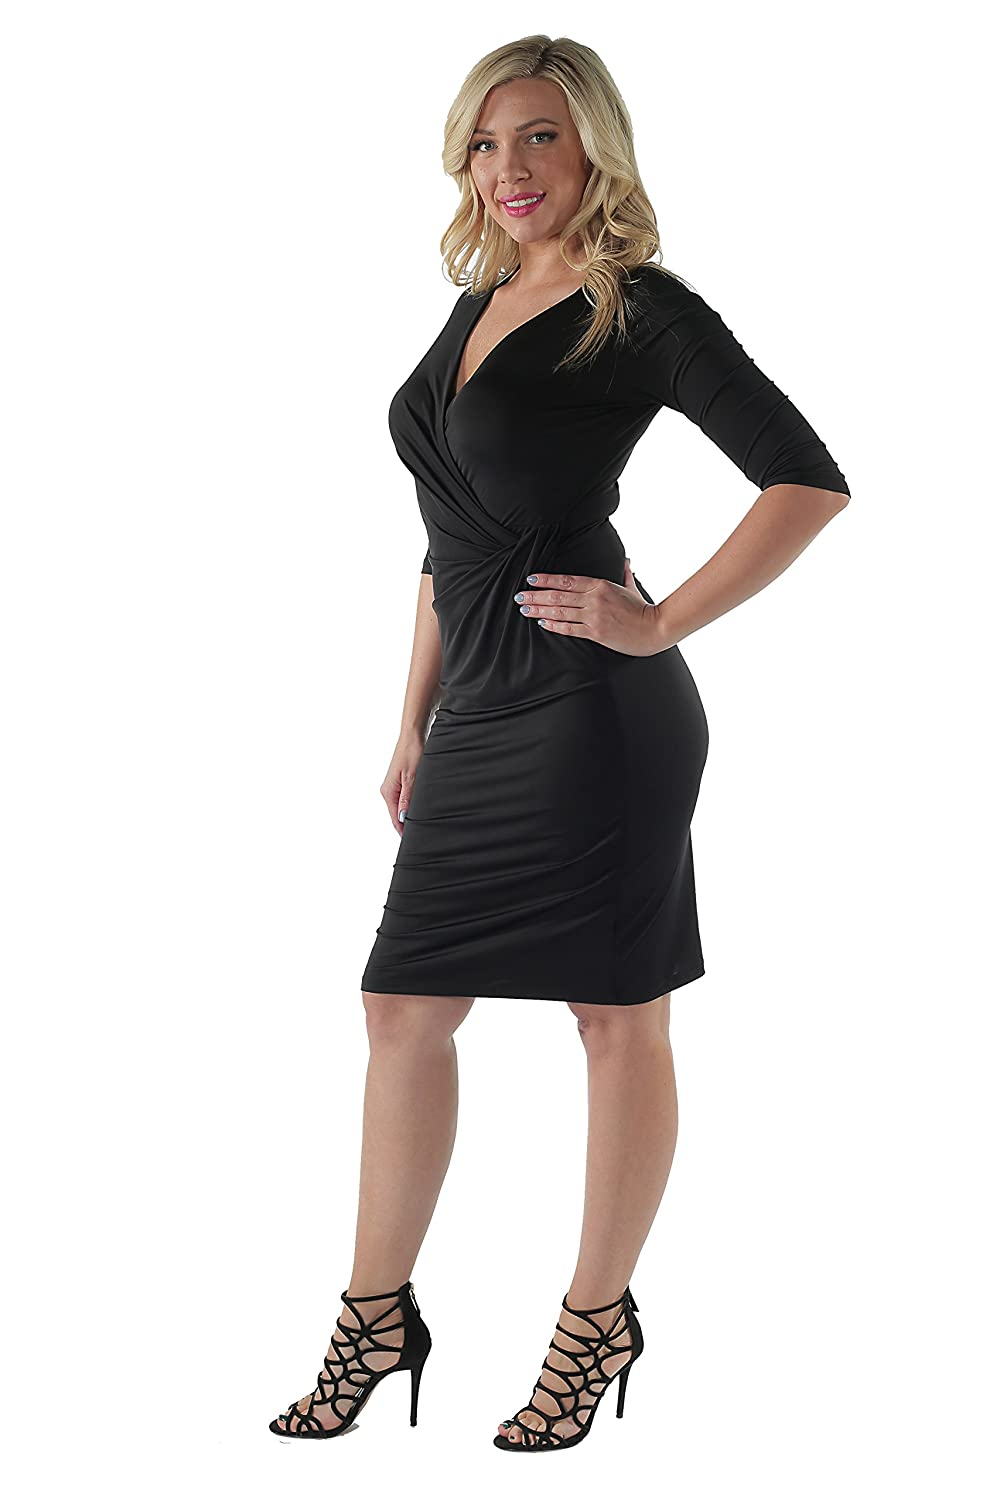 24seven Comfort Apparel Womens Plus Size 3//4 Sleeve Draped V Neck Figure Flattering Dress Sizes 1XL-3XL Made in USA